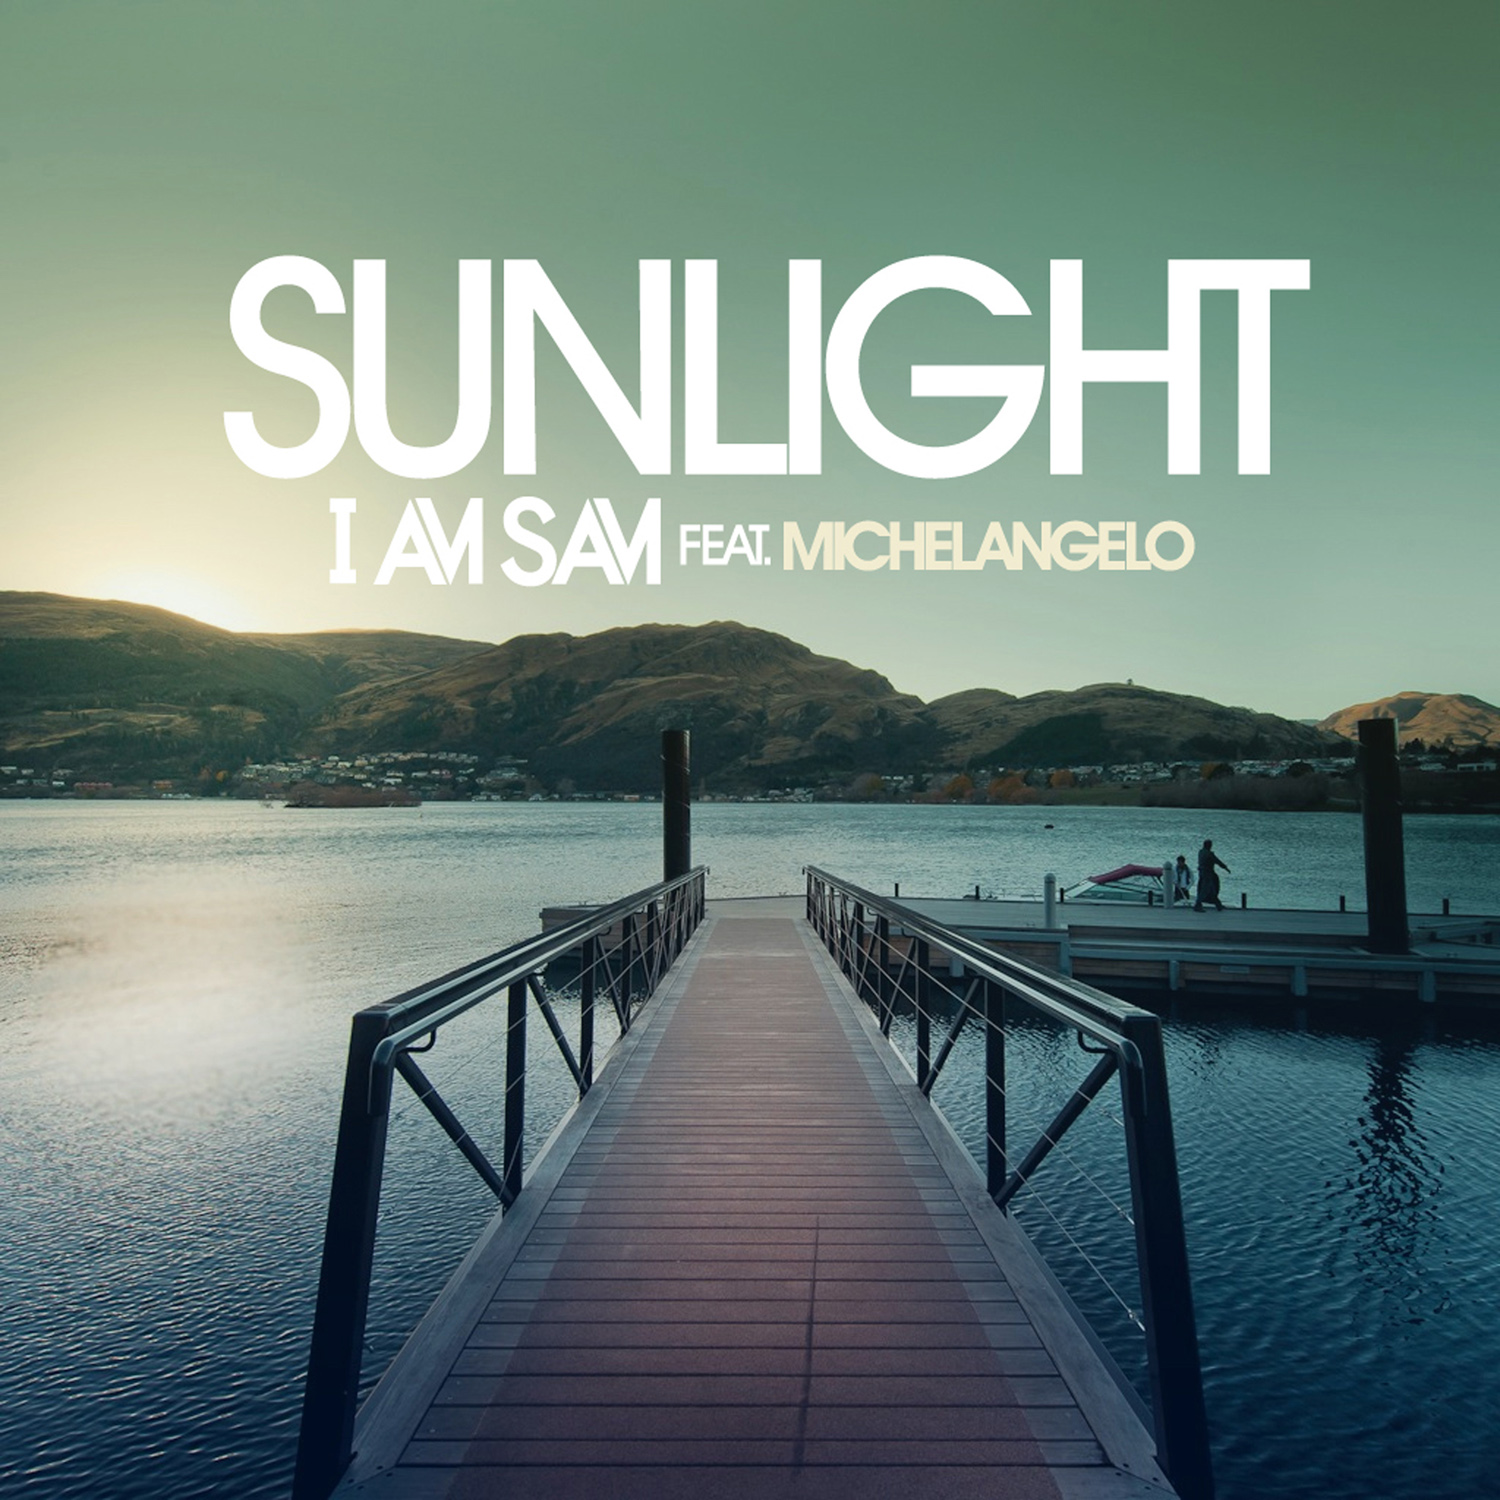 I Am Sam - Sunlight (feat. Michelangelo)